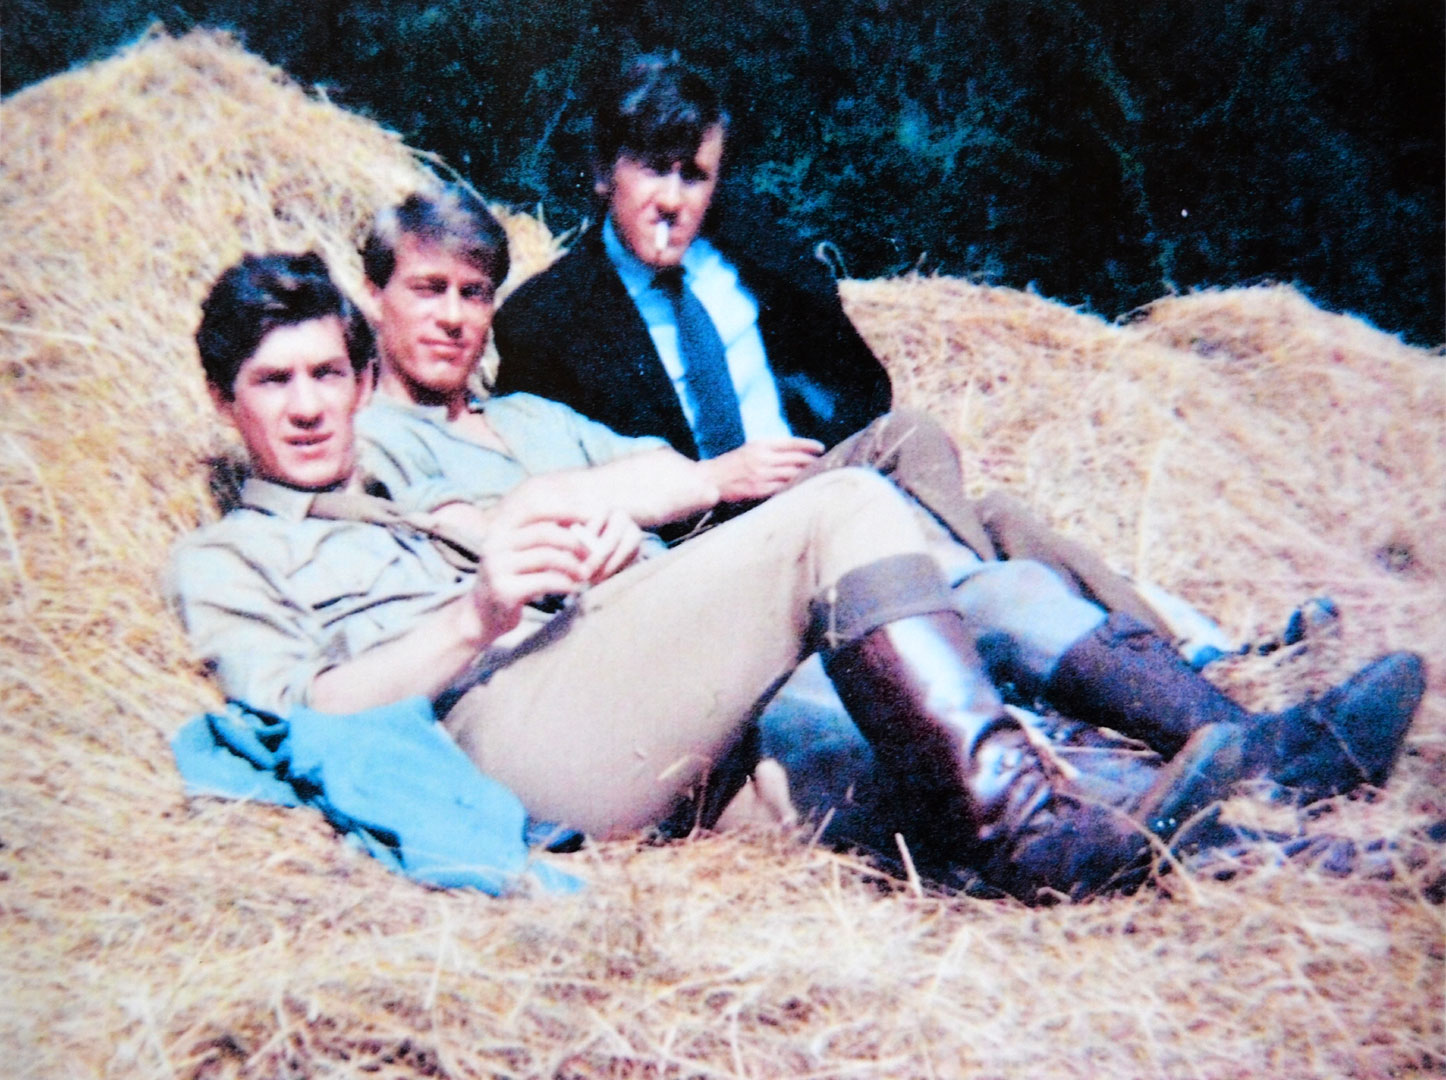 On the set of a film that was never completed, with Burr DeBenning and David Battley